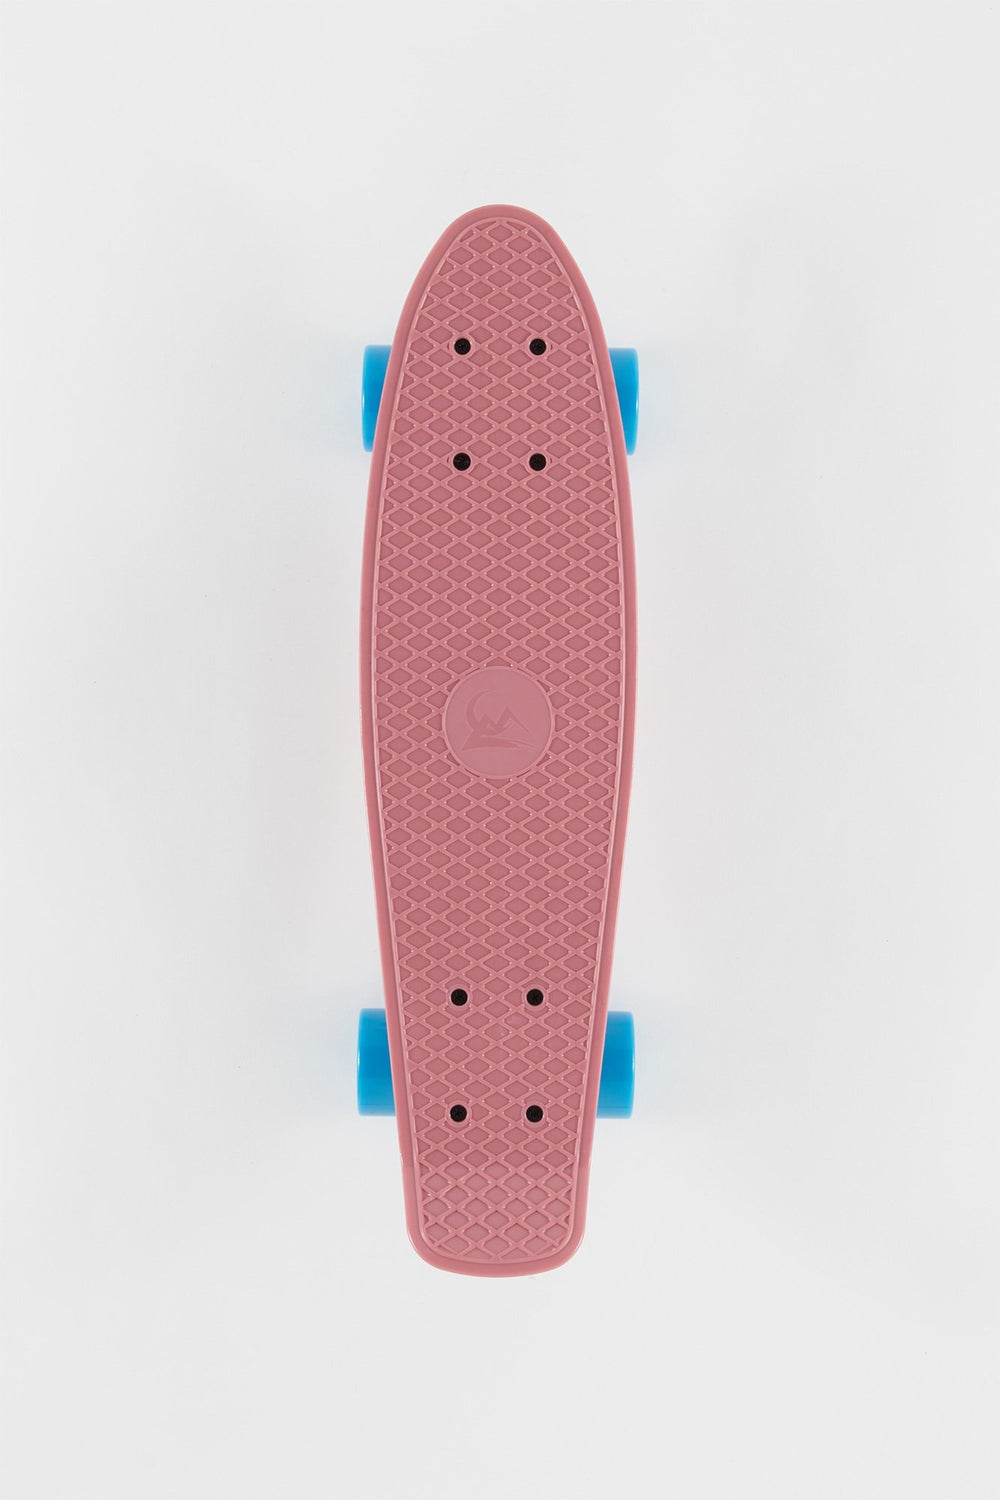 Solid Light Pink Cruiser 22